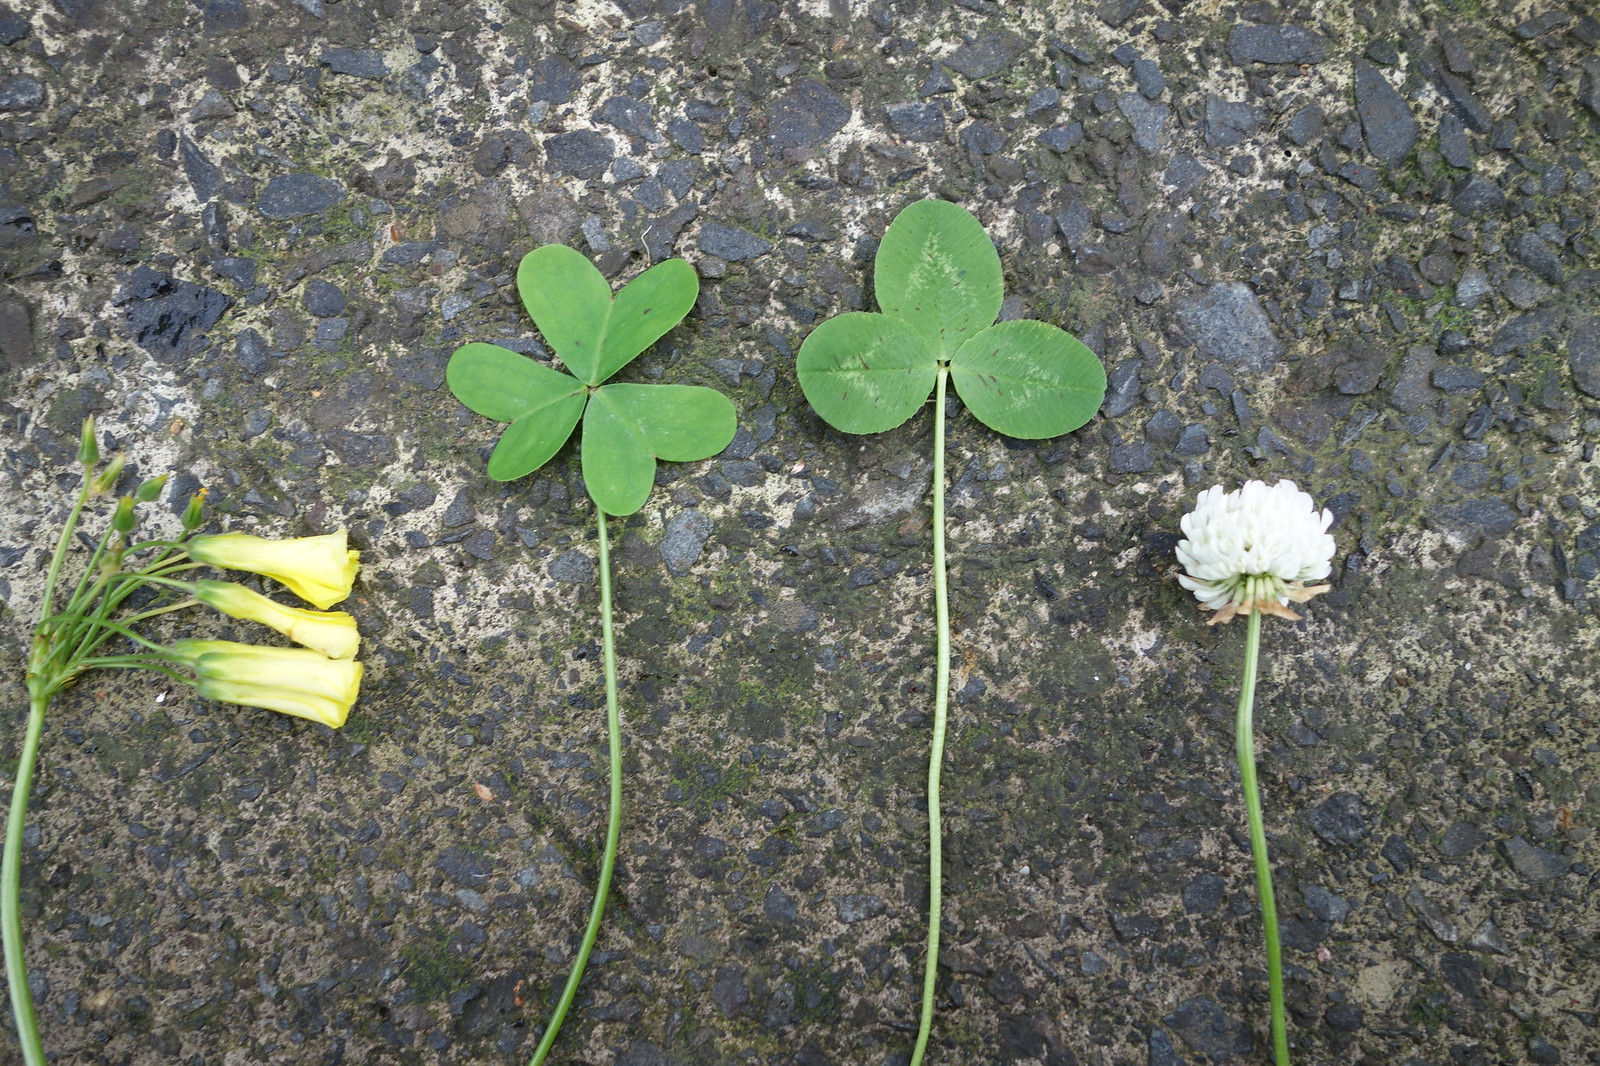 Oxalis (left) and white clover (right)